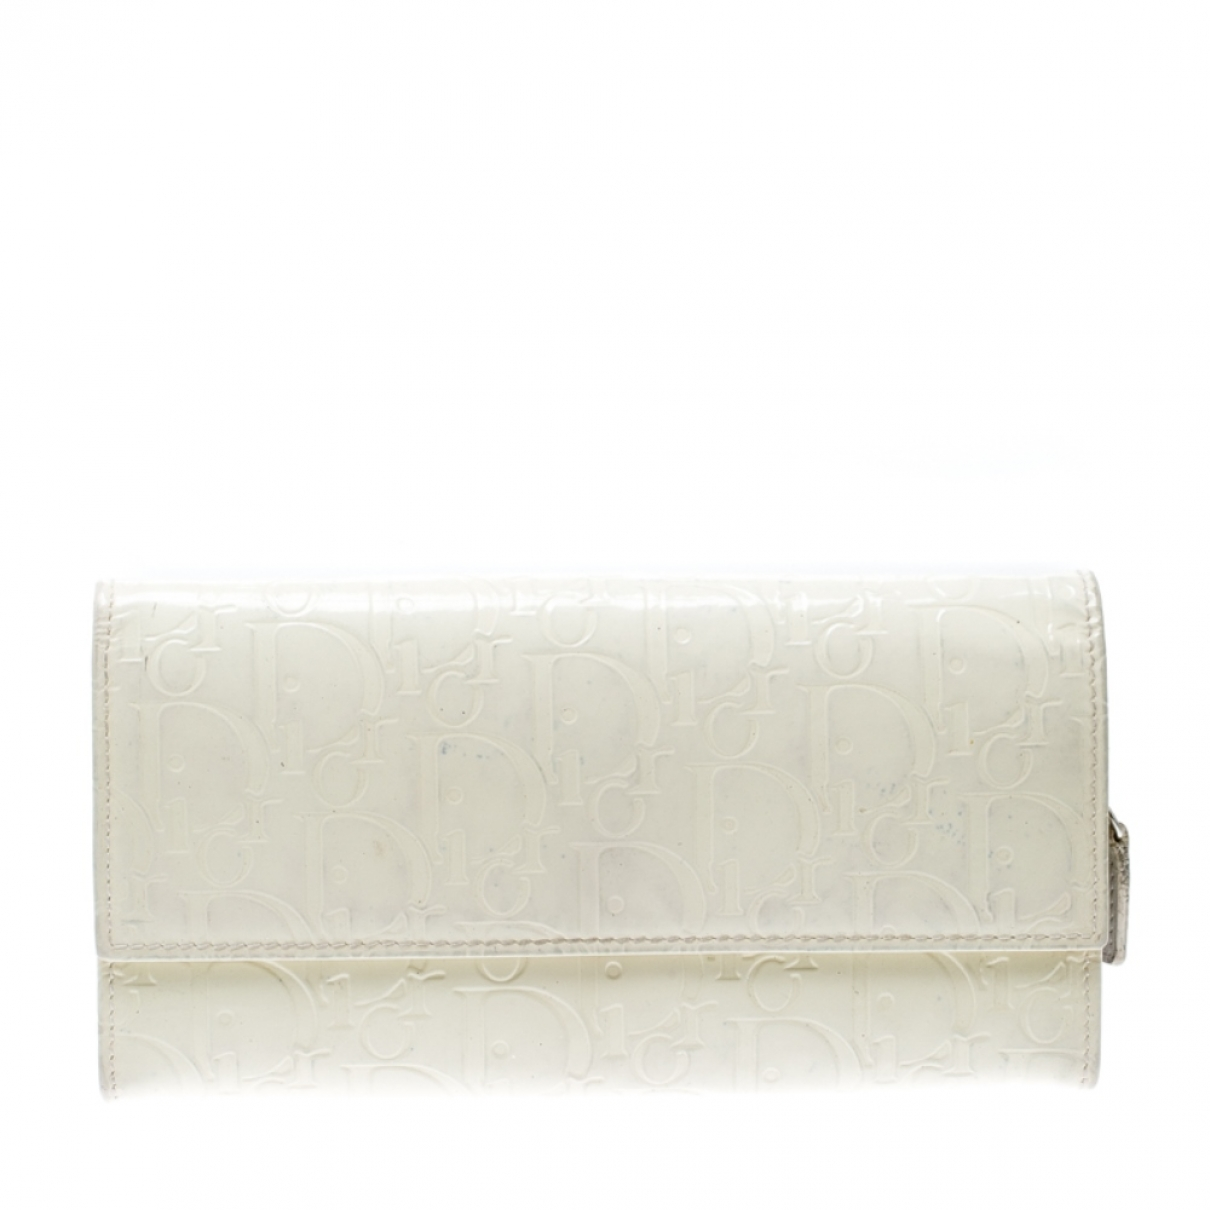 Dior \N Patent leather wallet for Women \N